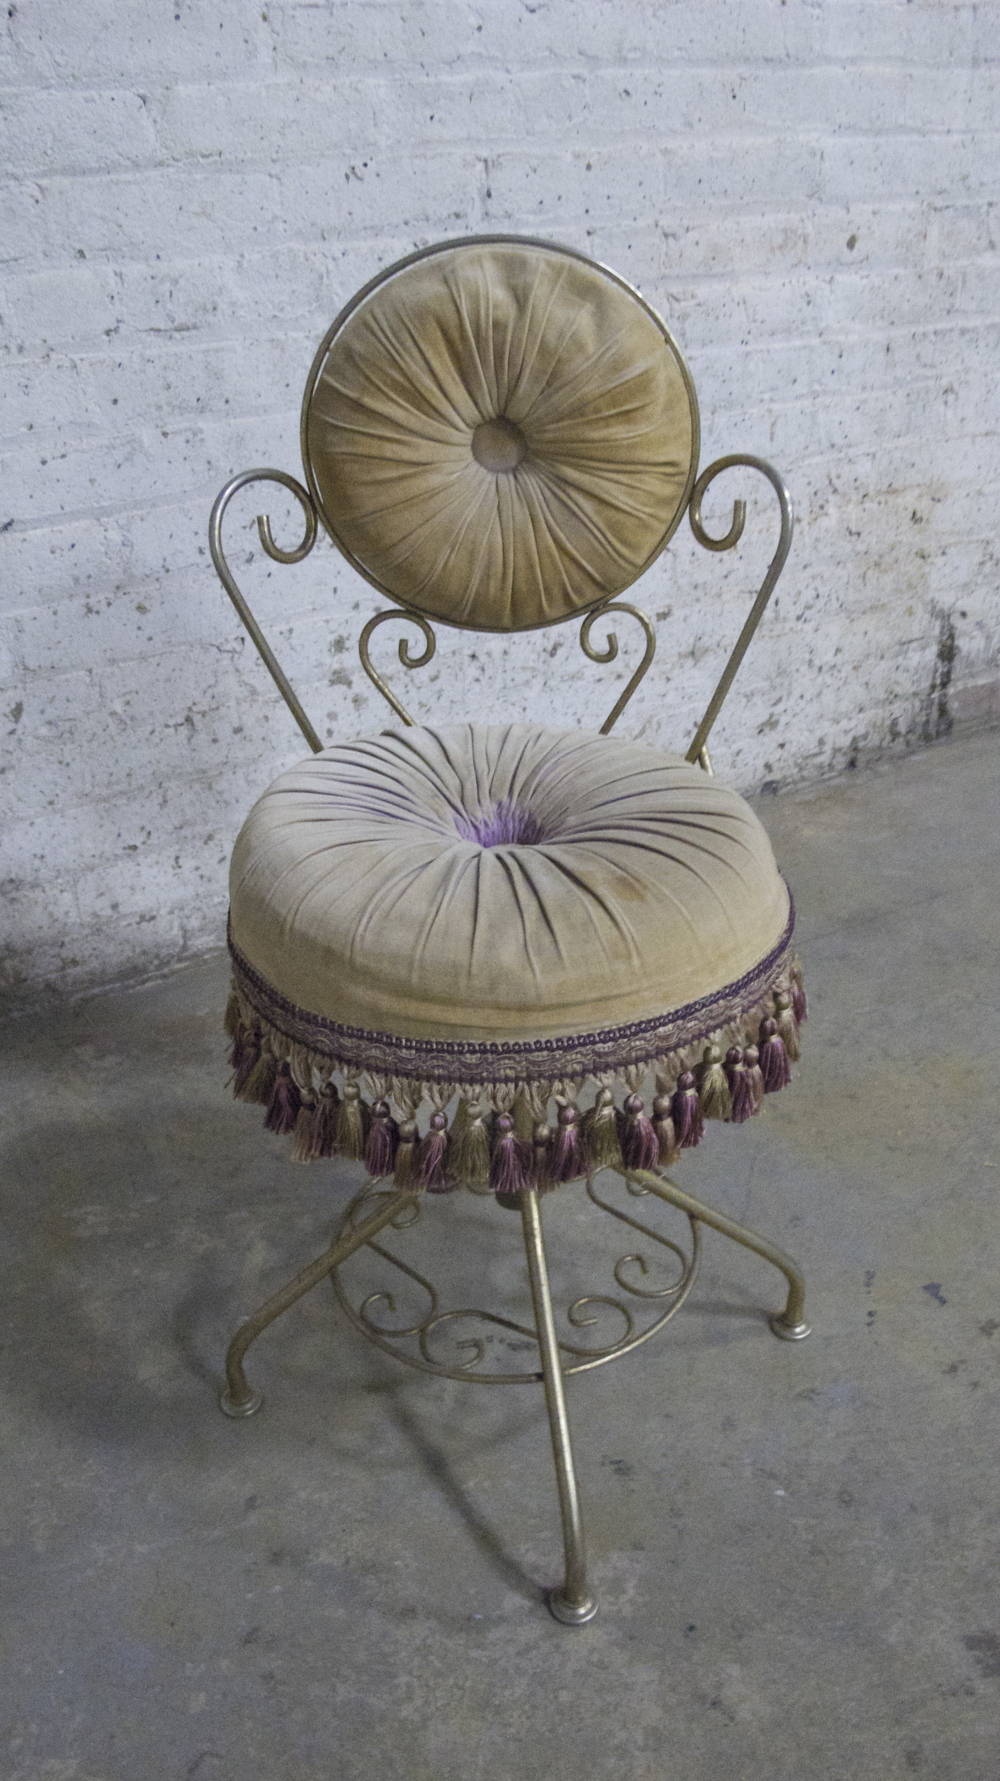 Velvet Powder Chair $35